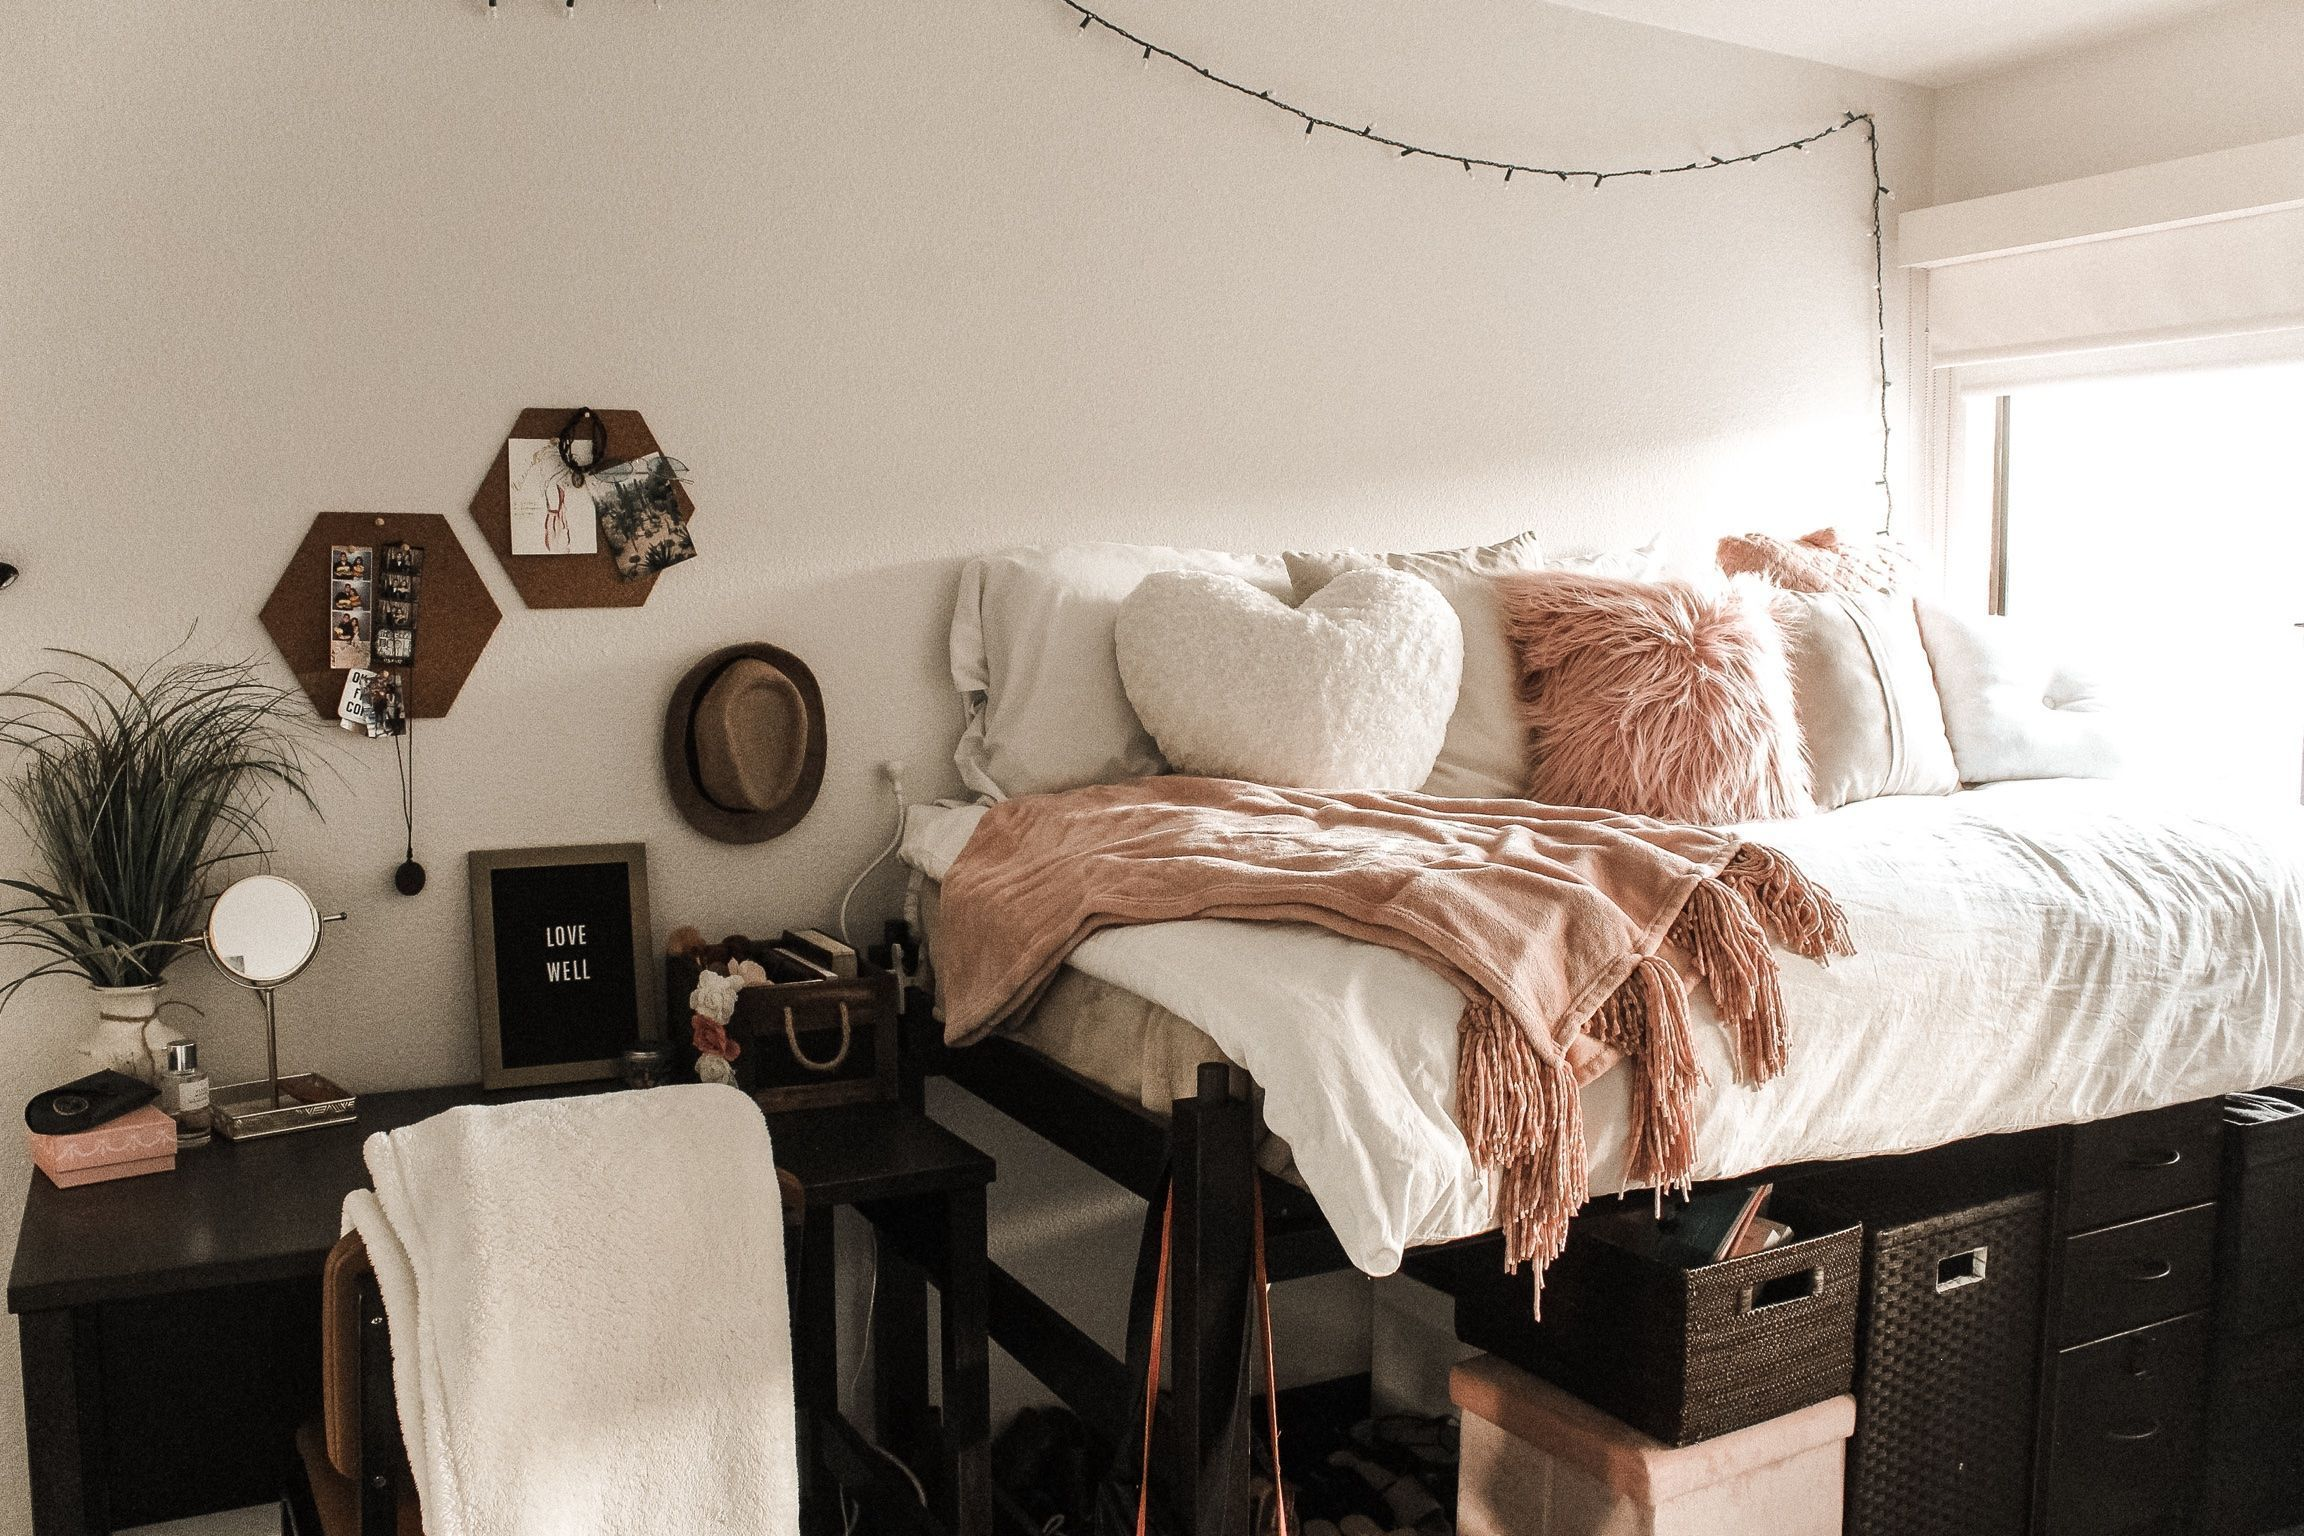 52 Stylish Cool Dorm Rooms Style Decor Ideas images